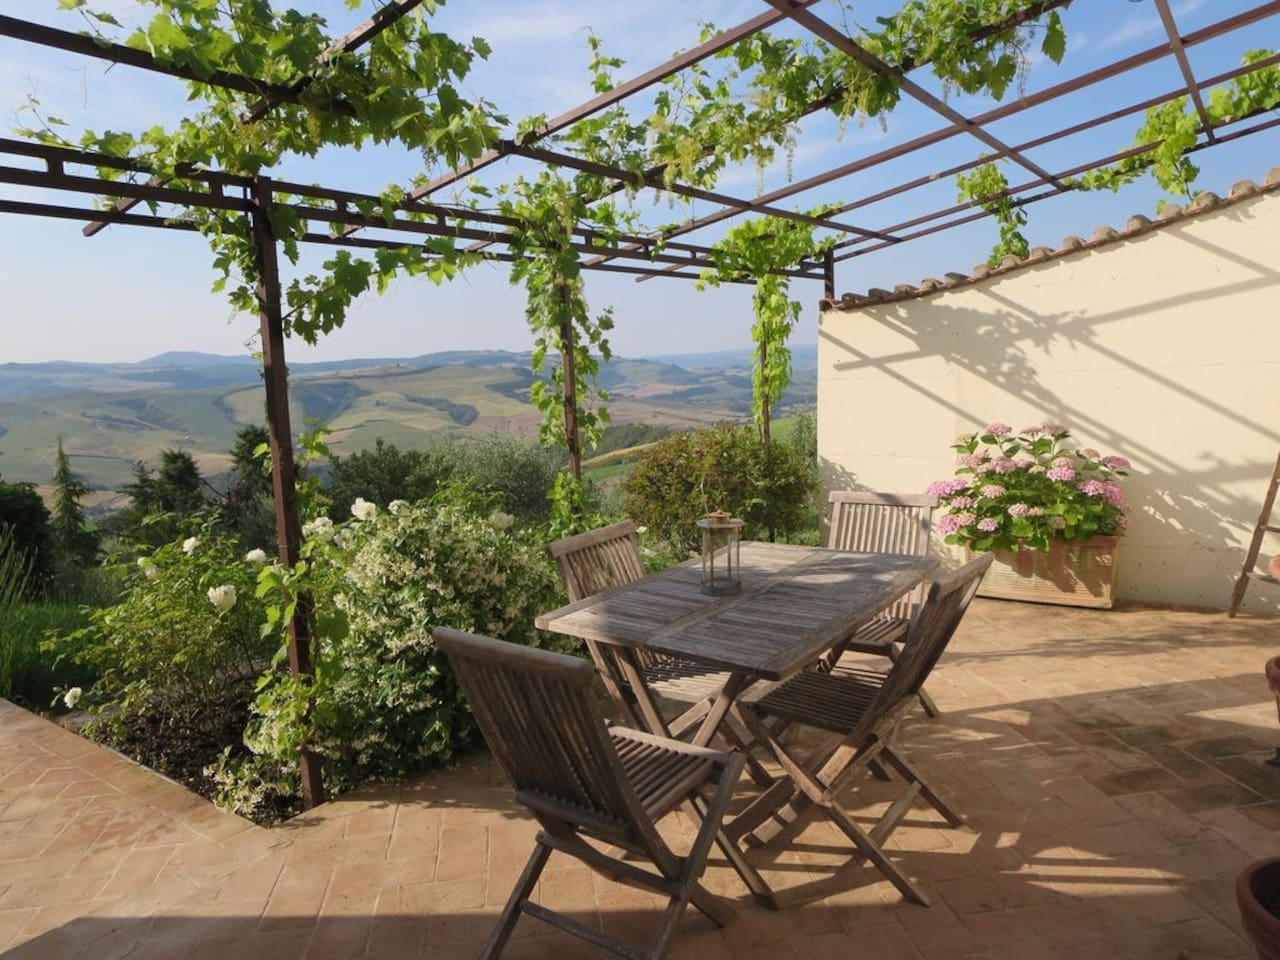 View of hills from the grape vine covered pergola